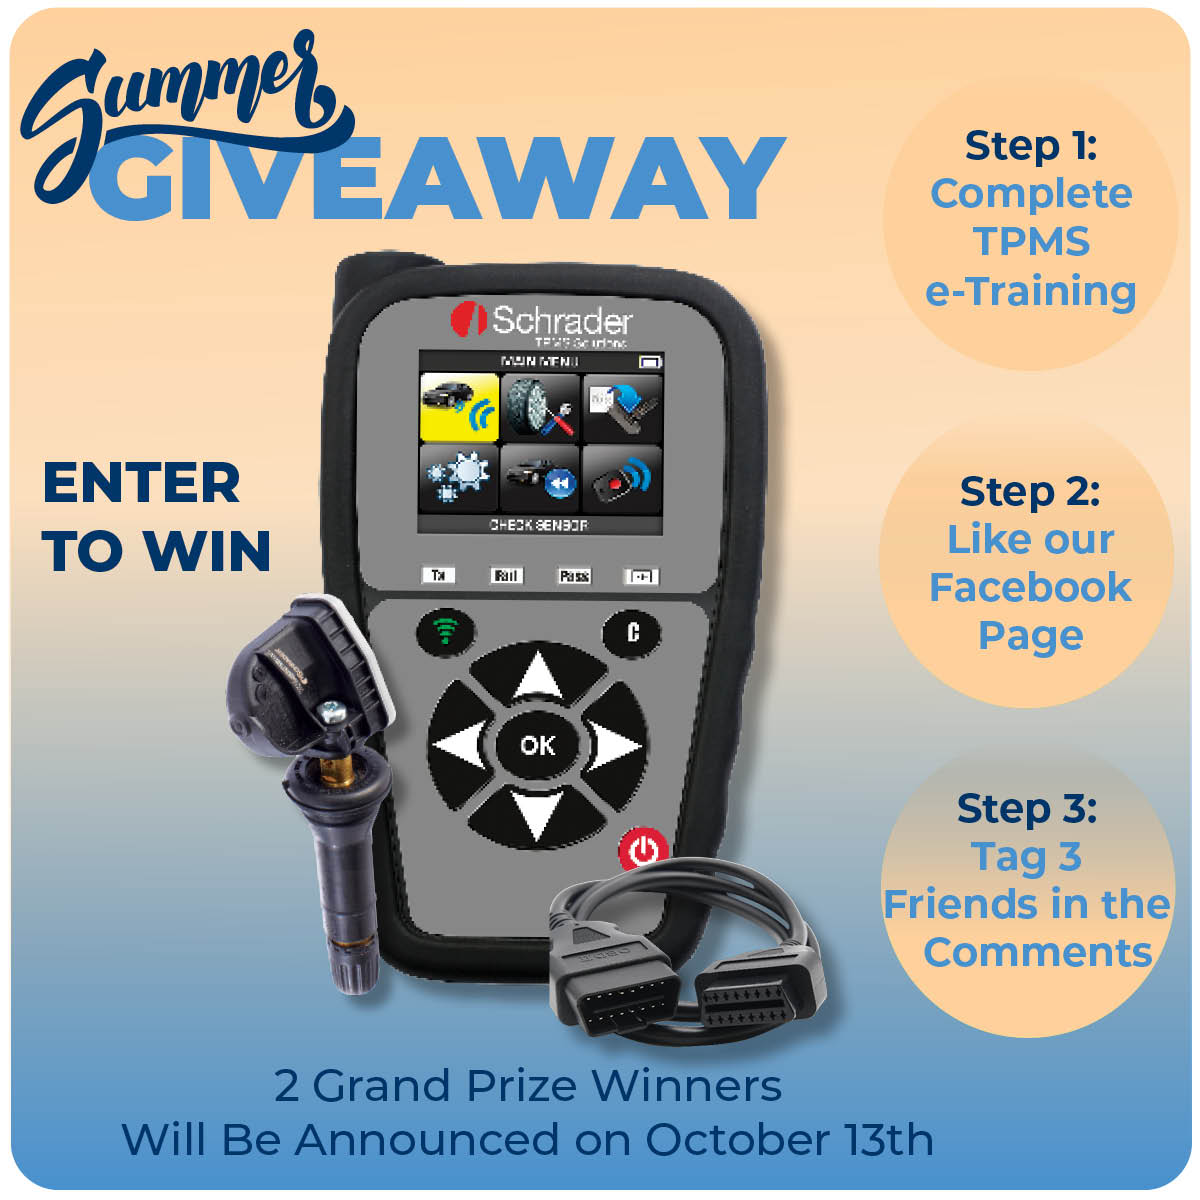 Schrader Launches 'Summer Giveaway' Contest